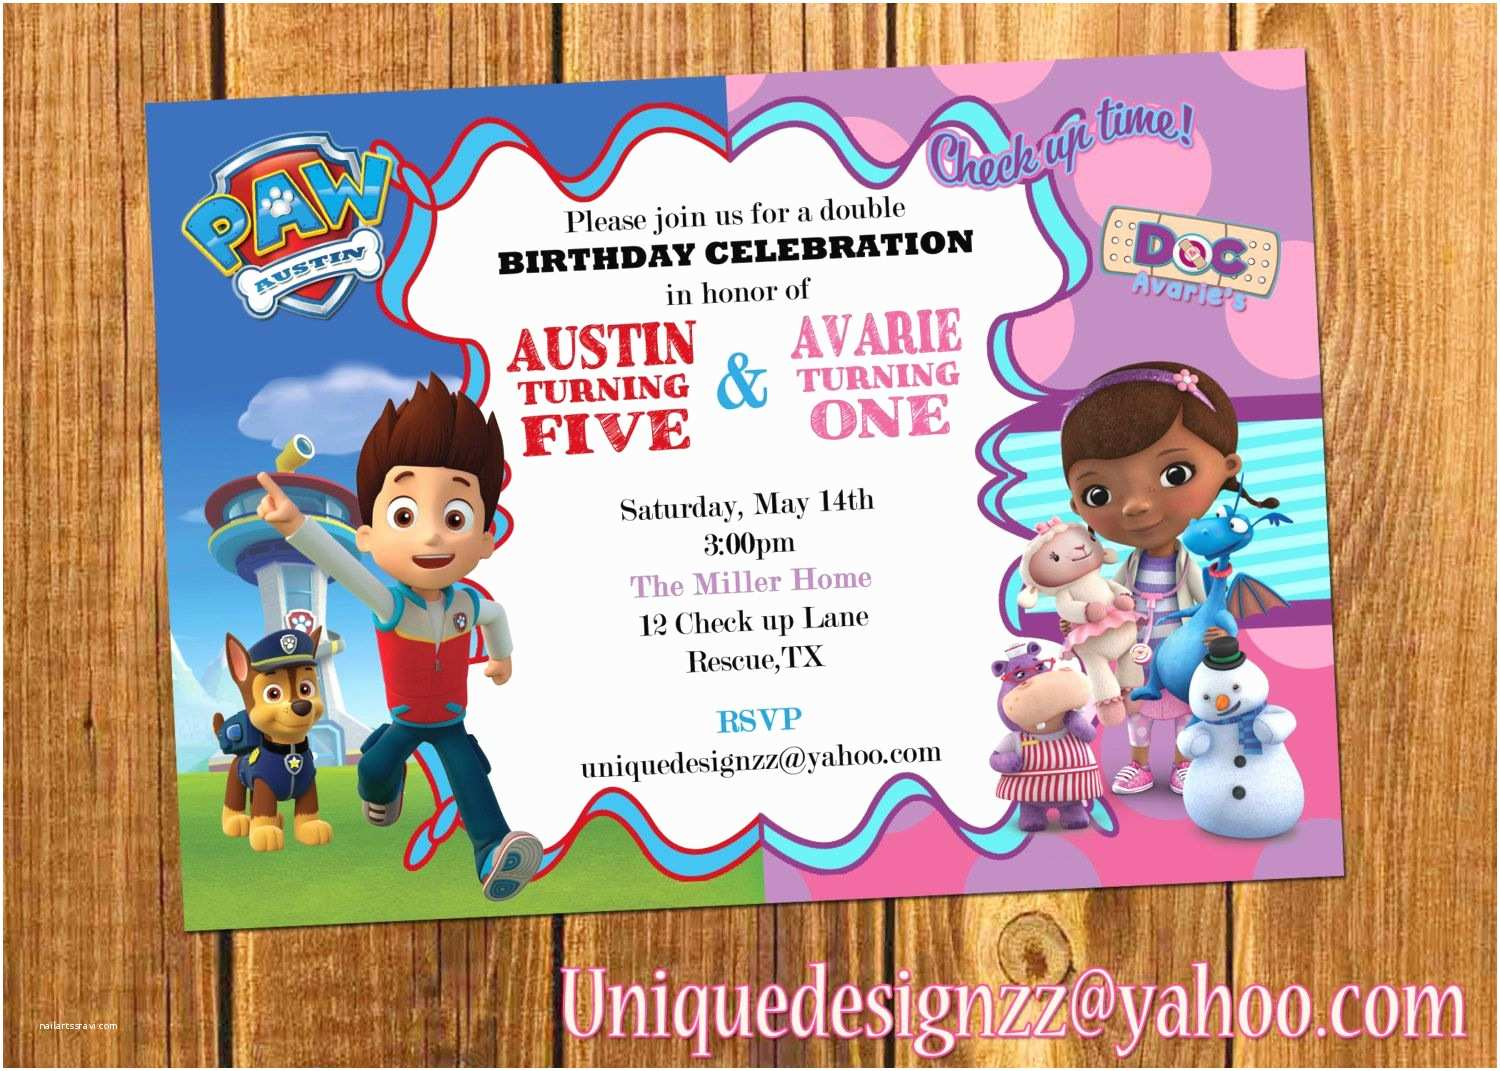 Paw Patrol Birthday Party Invitations Paw Patrol and Doc Mcstuffins Double Birthday Party